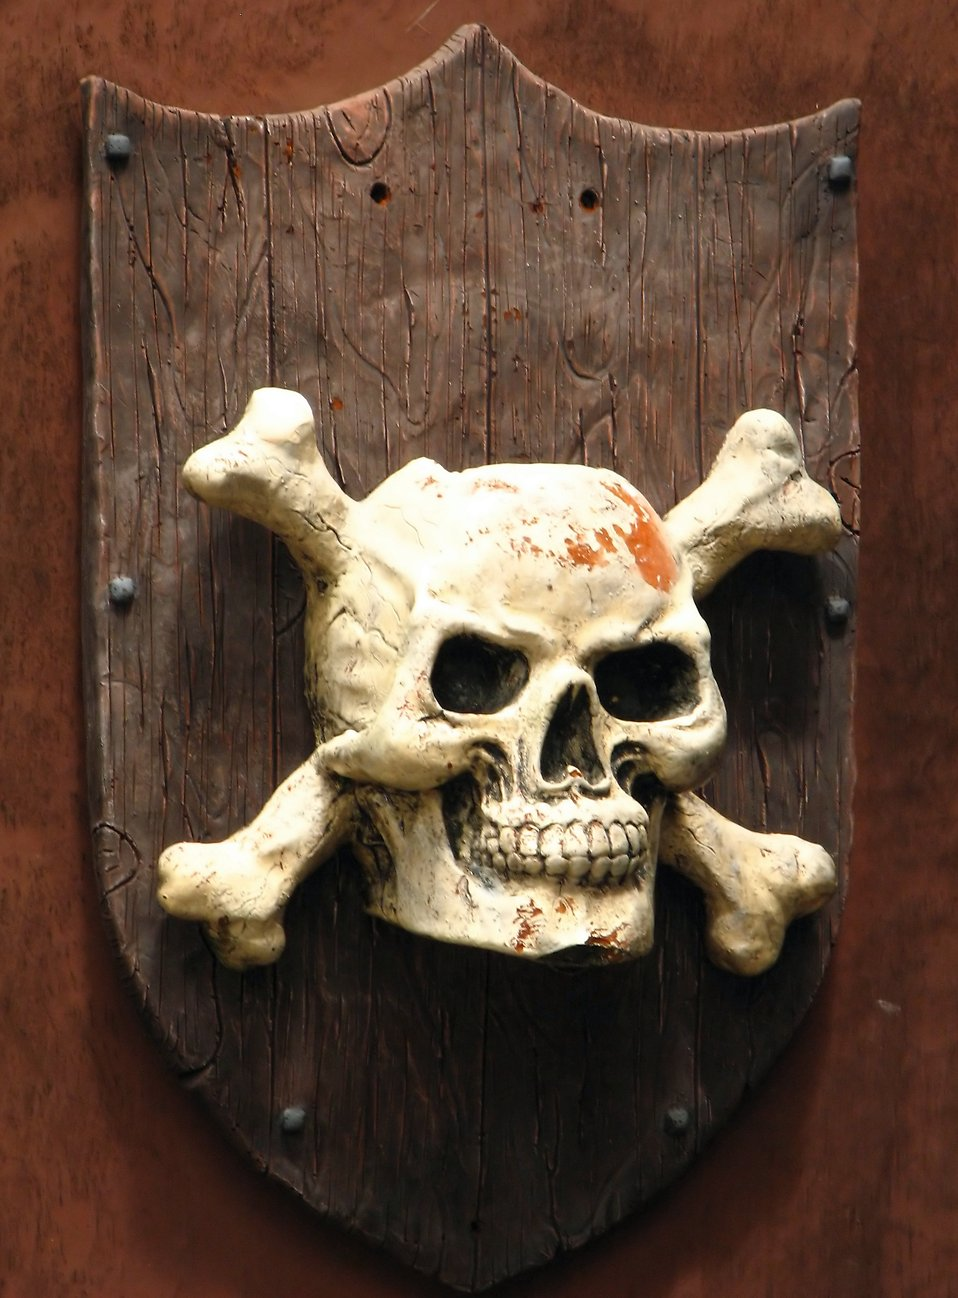 A skull and crossbones pirate plaque on a wall : Free Stock Photo